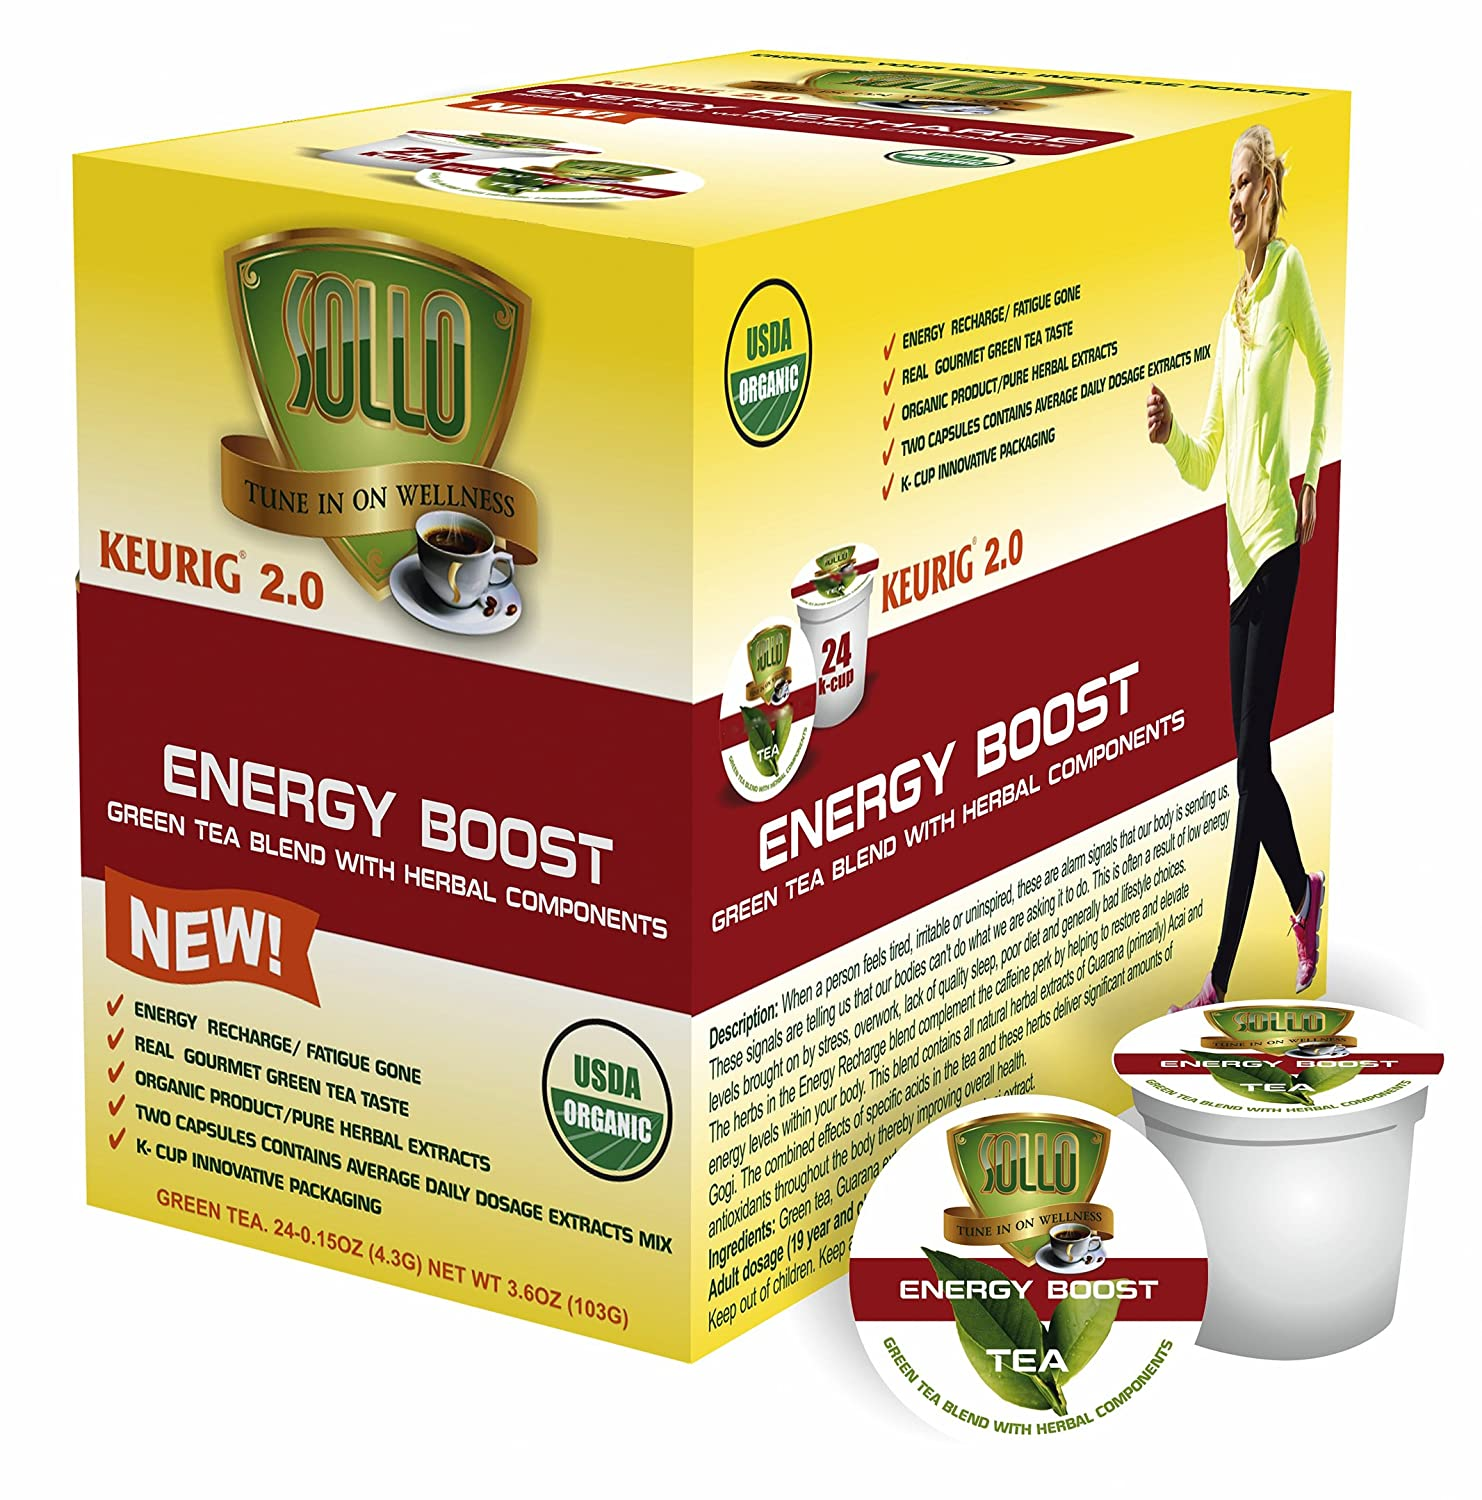 Blend gourmet herbal tea - Amazon Com Sollo Single Serve Keurig 2 0 Compatible Tea Pods Energy Boost Organic Green Tea With Herbal Extracts 24 Count Per Box Organic By Usda